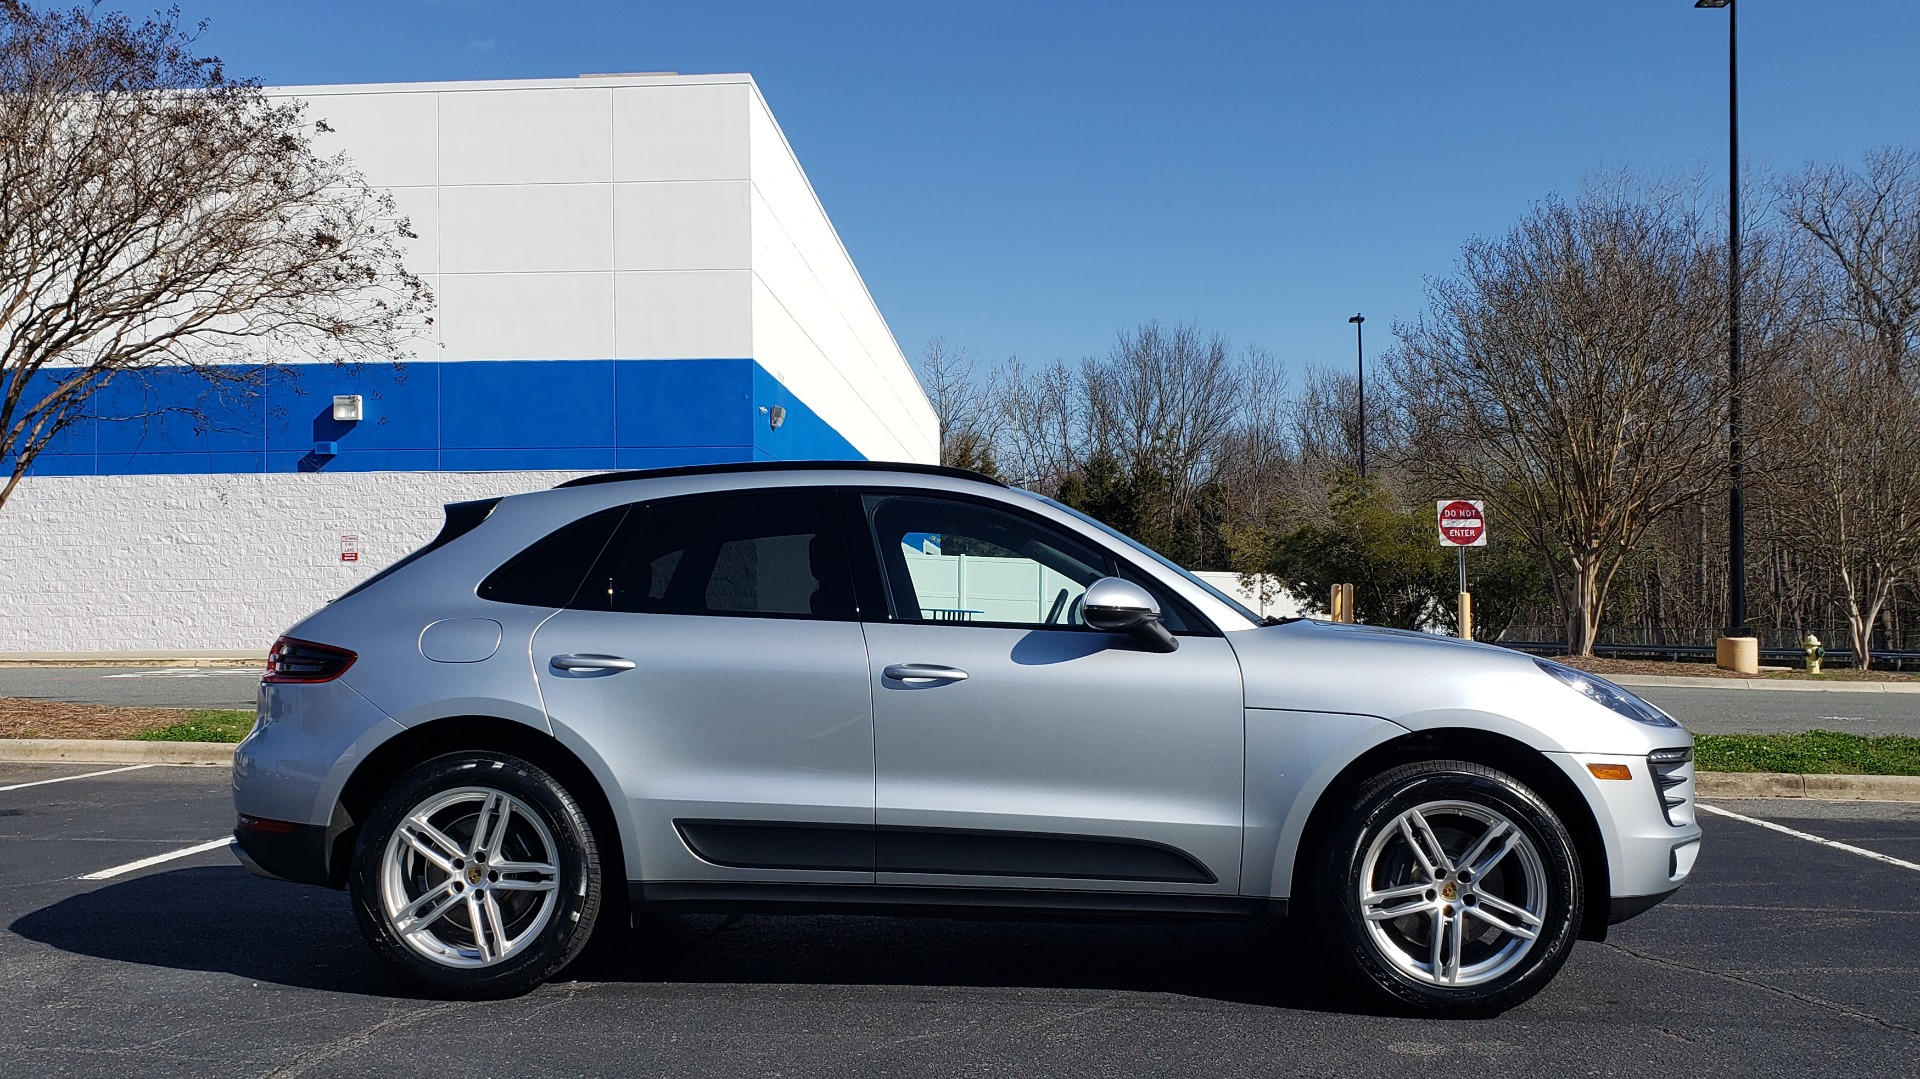 Used 2018 Porsche MACAN AWD / PDK / NAV / PANO-ROOF / BOSE / REARVIEW / LCA for sale Sold at Formula Imports in Charlotte NC 28227 5